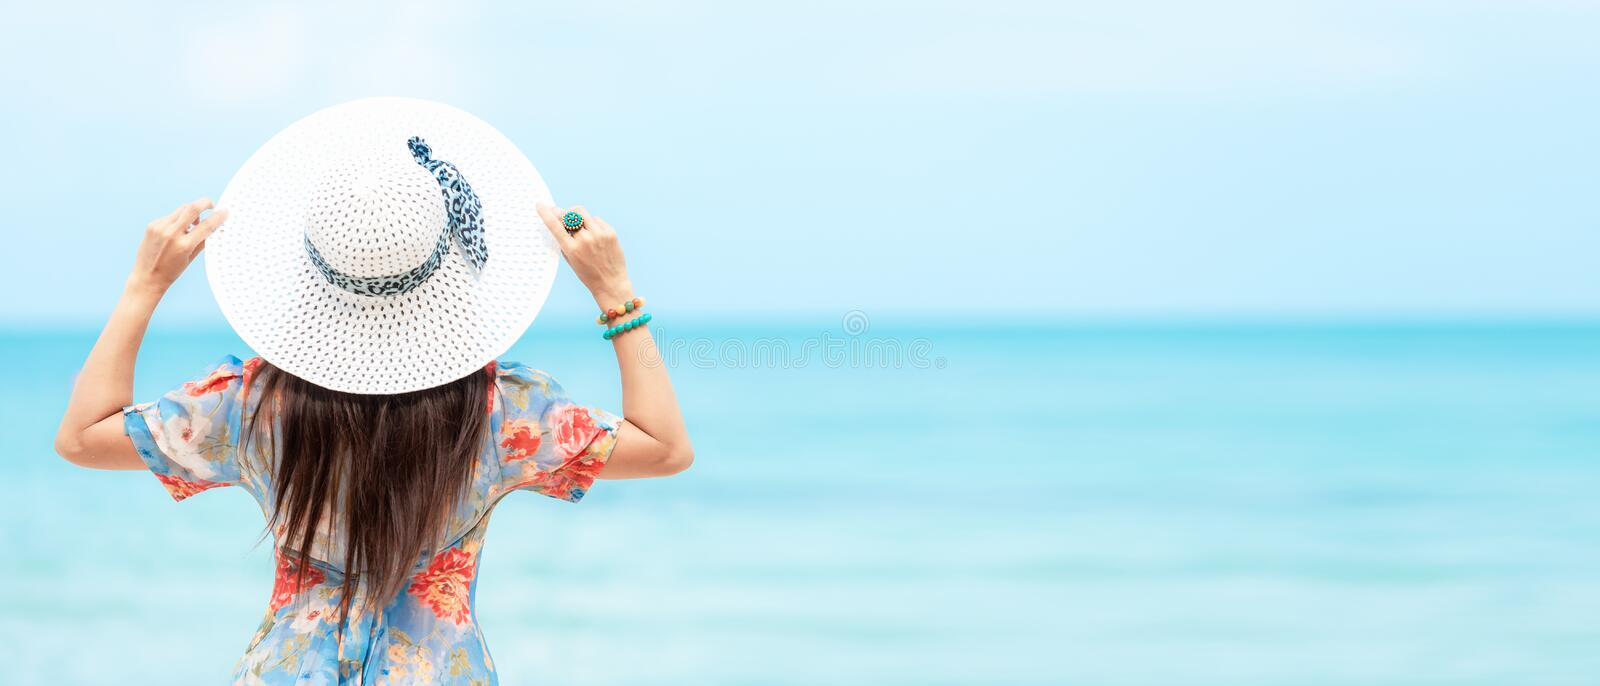 Summer Vacation.  Traveler women relaxing and joy fun on the beach, so happy and luxury and destination in holiday summer.  Touris stock photos